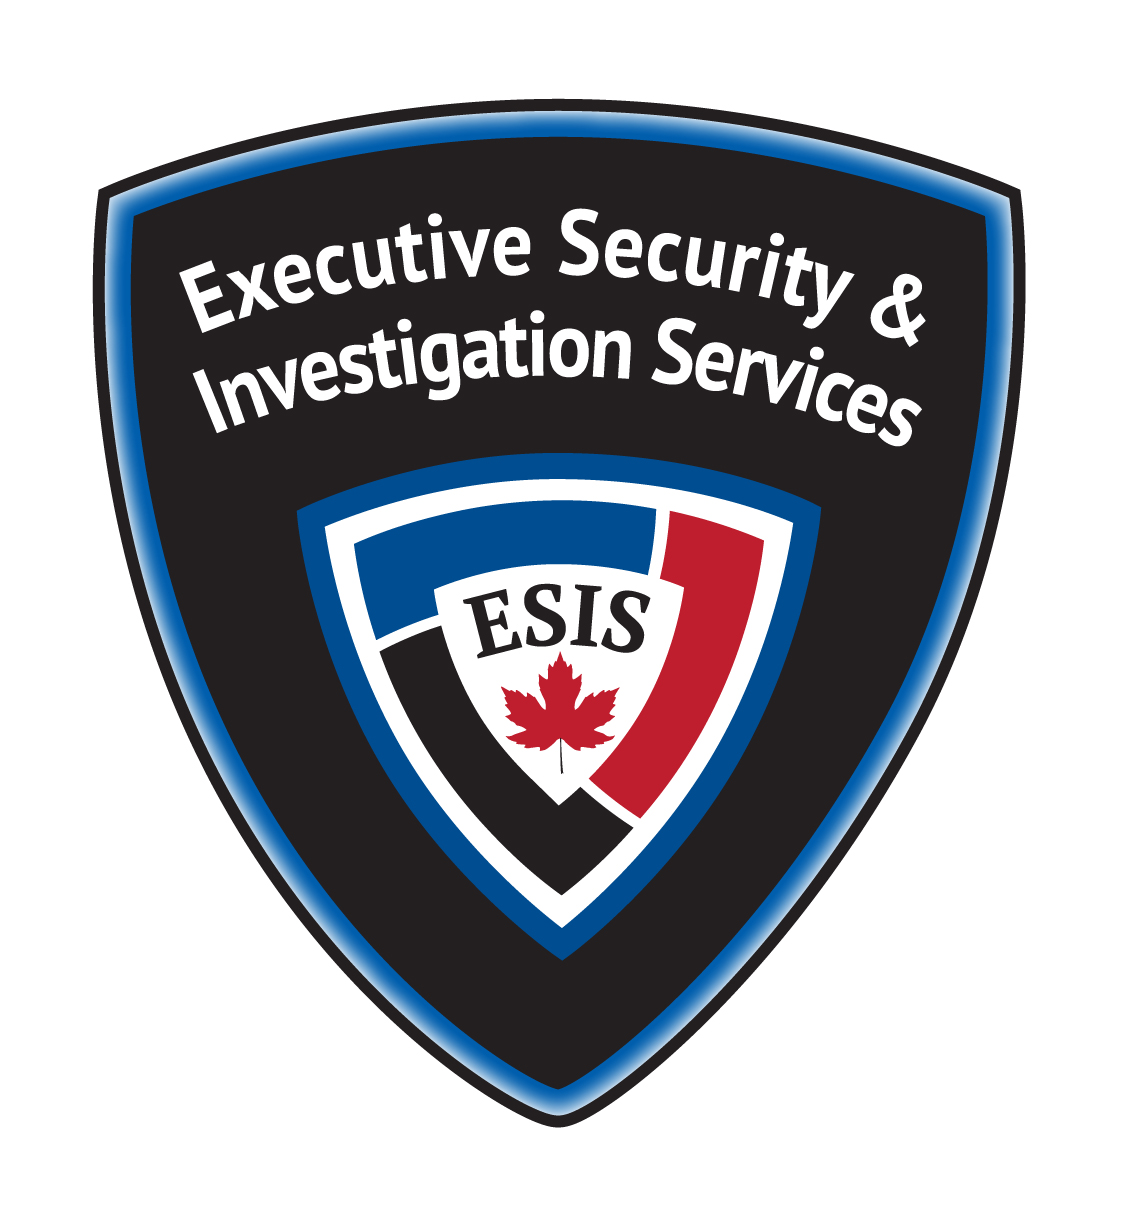 Executive Security & Investigation Services